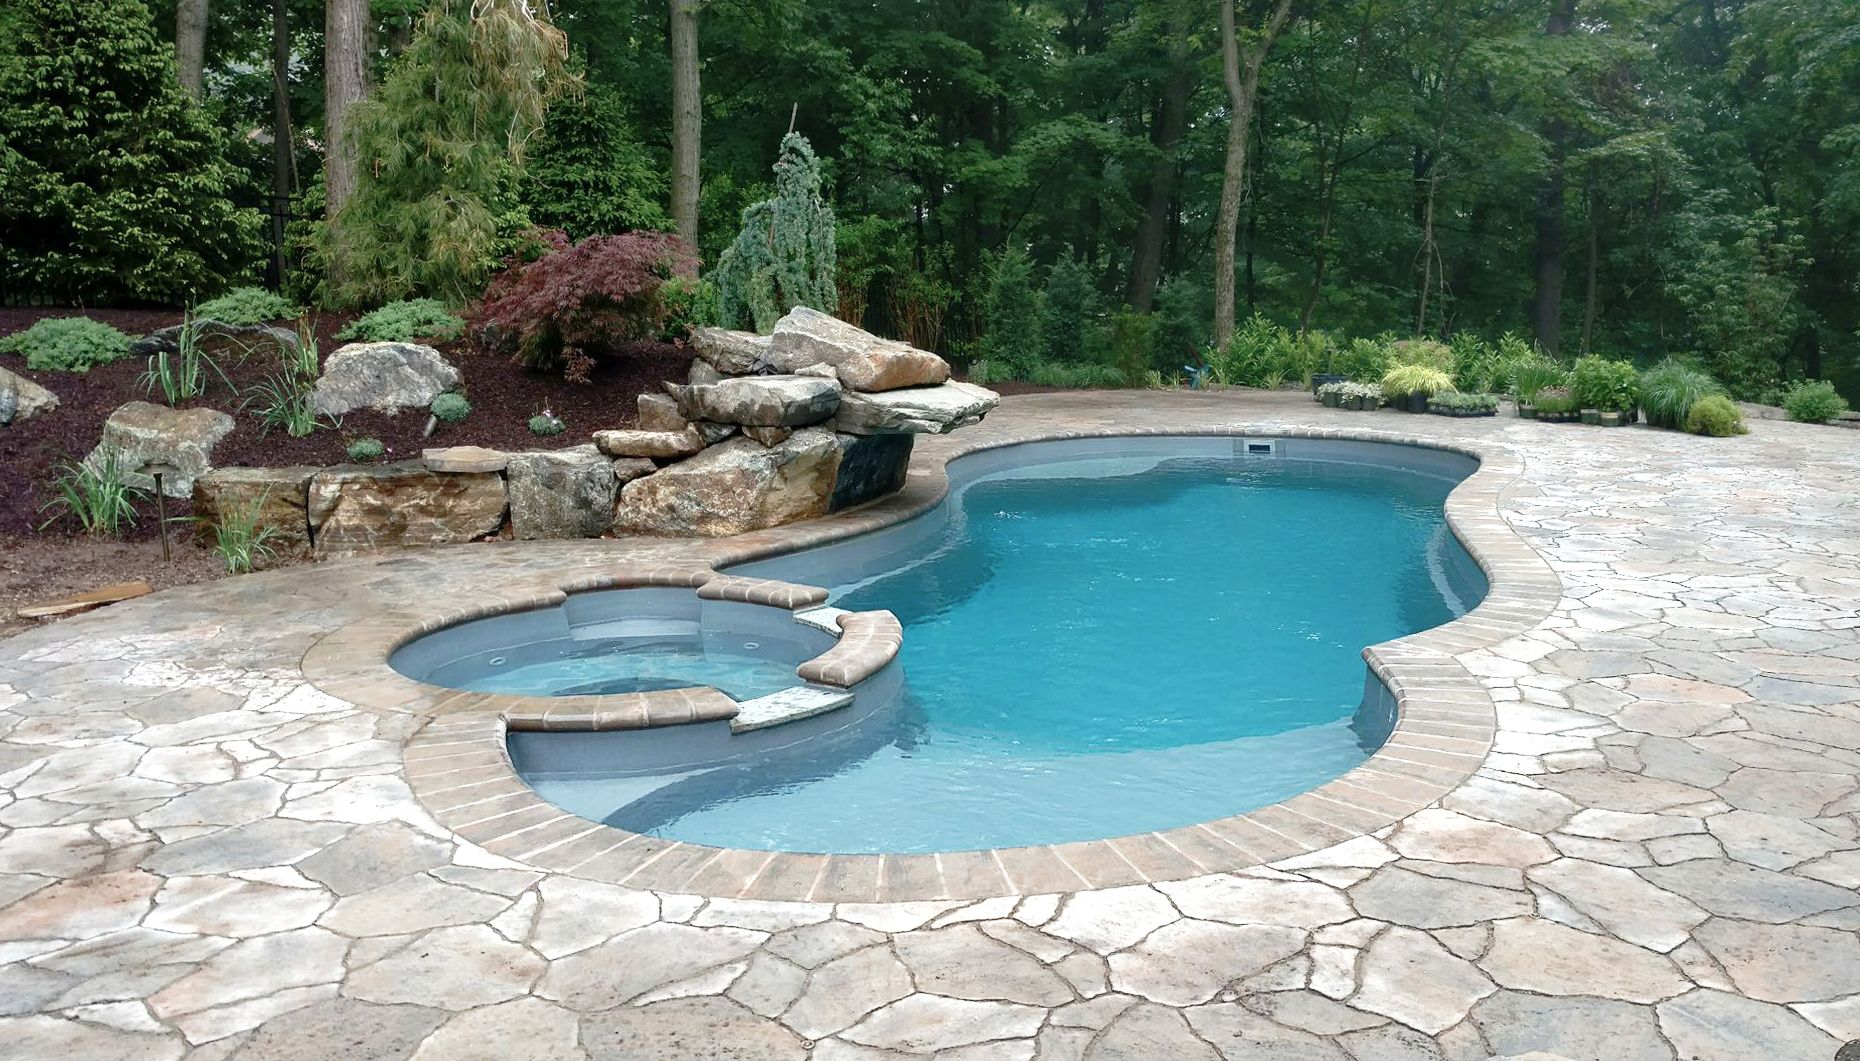 The allure leisure pools usa in 2019 backyard pool for Pool design usa